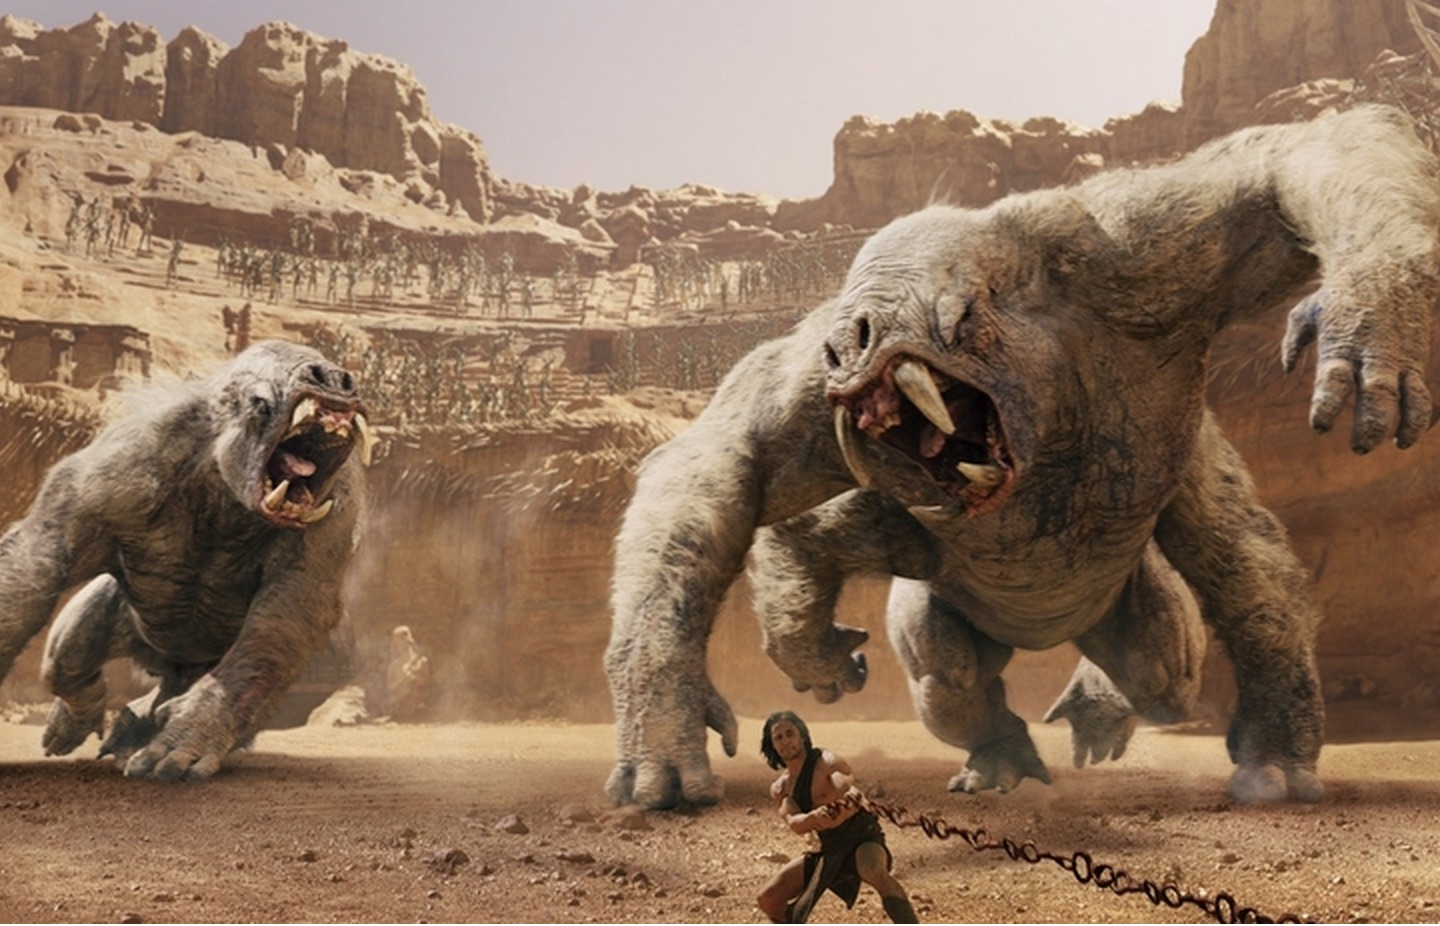 Hollywood Accounting 101: An Actual Profit and Loss Statement for John Carter is Revealing